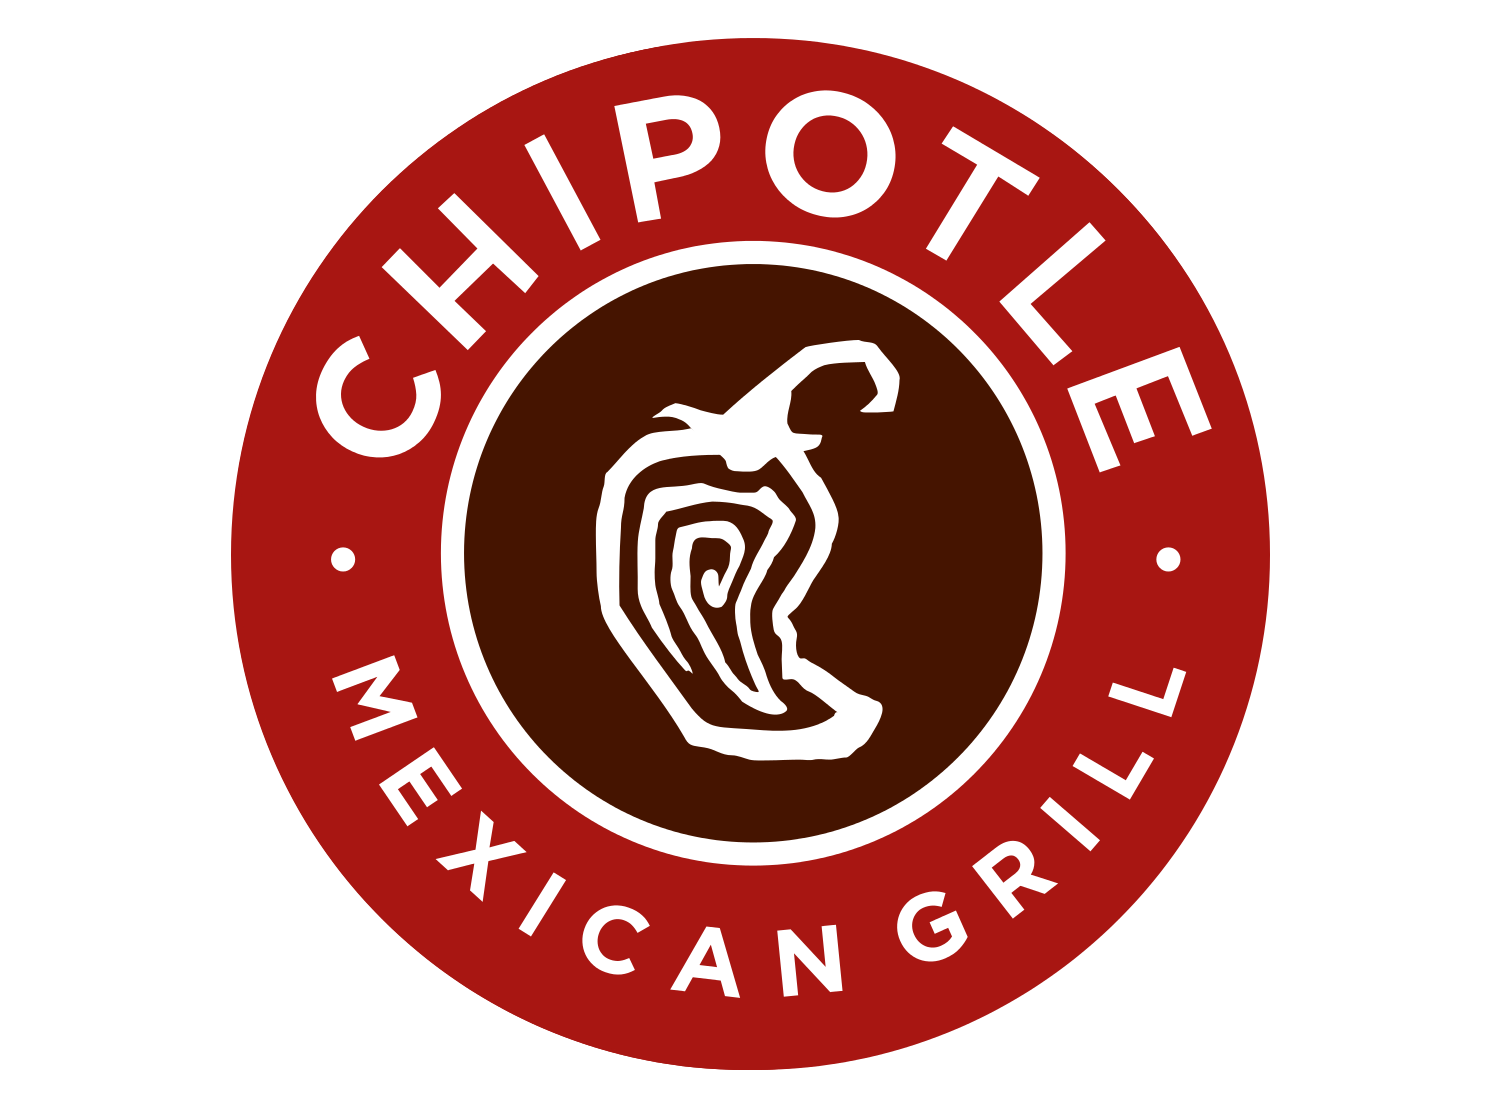 Chipotle logo png. Symbol meaning history and